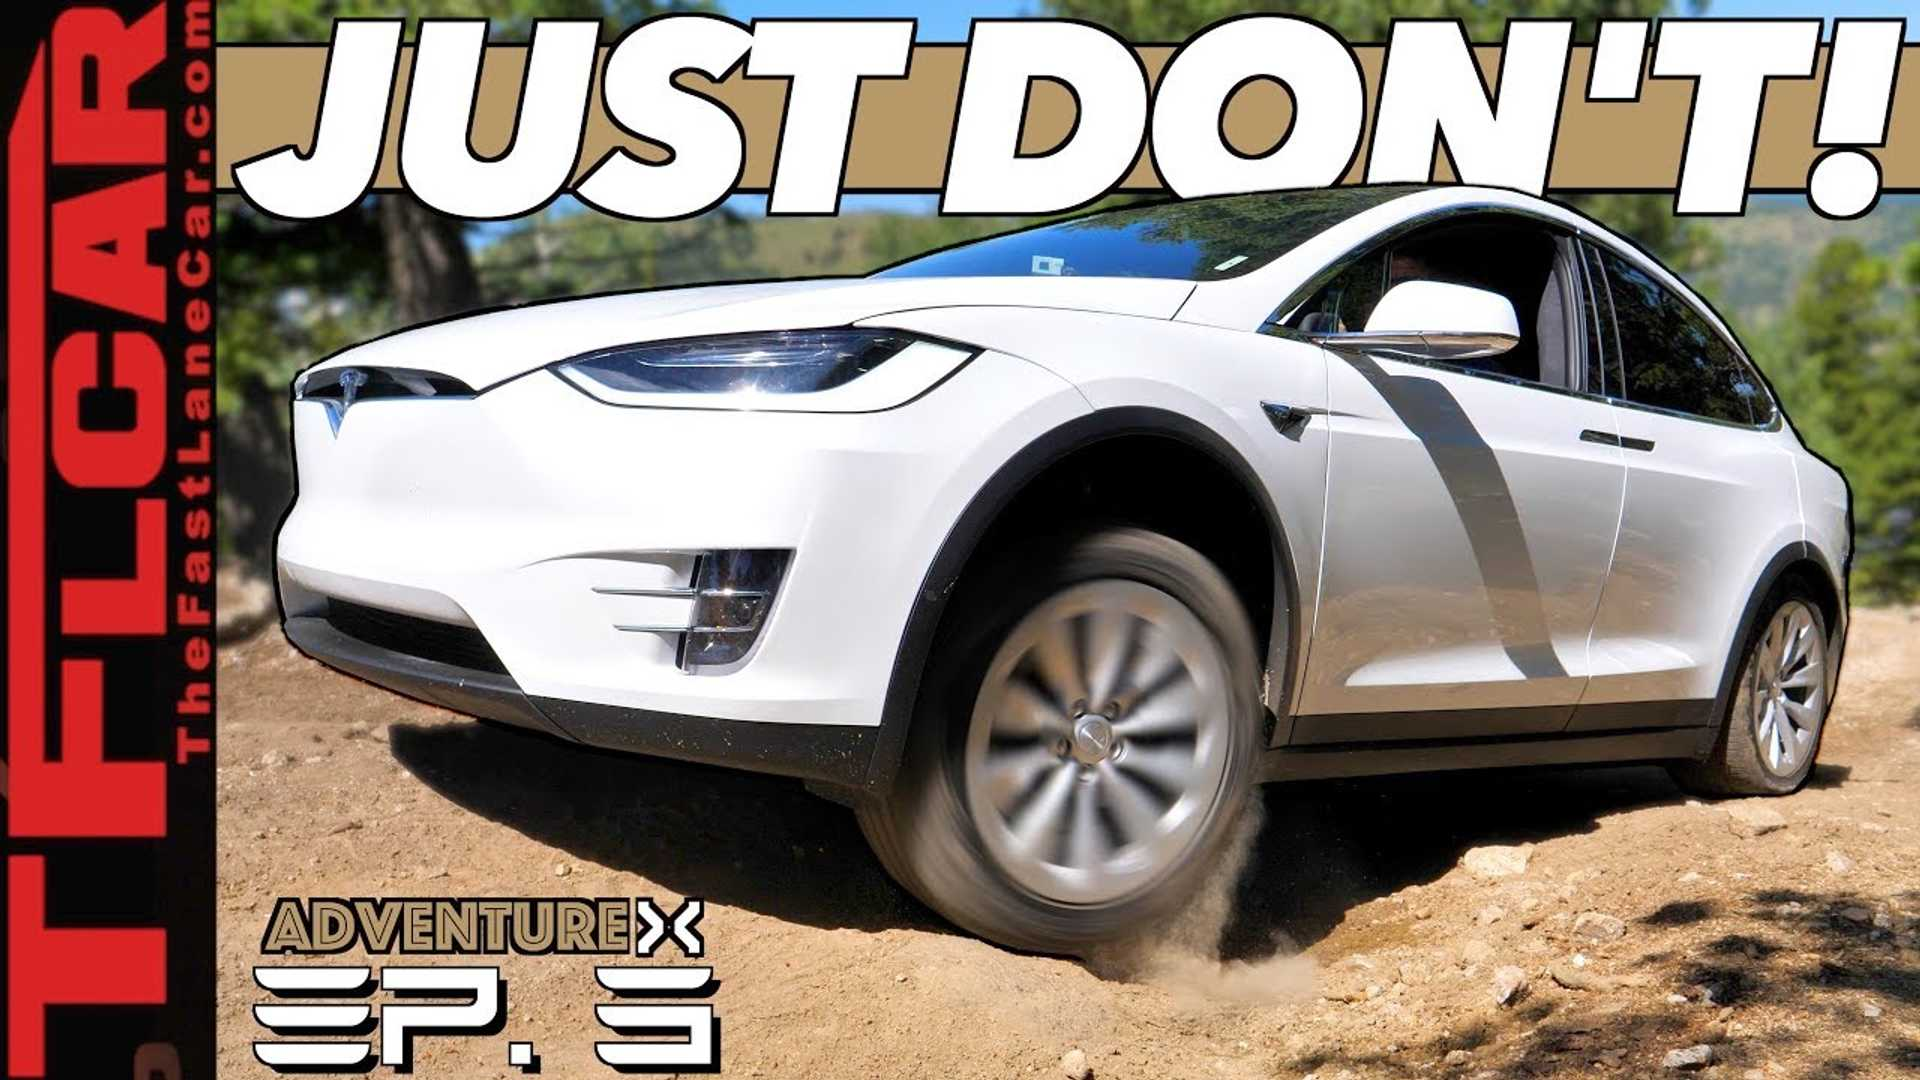 How Does Tesla Model X Compare To Old-School SUV Up A Rocky Mountain?